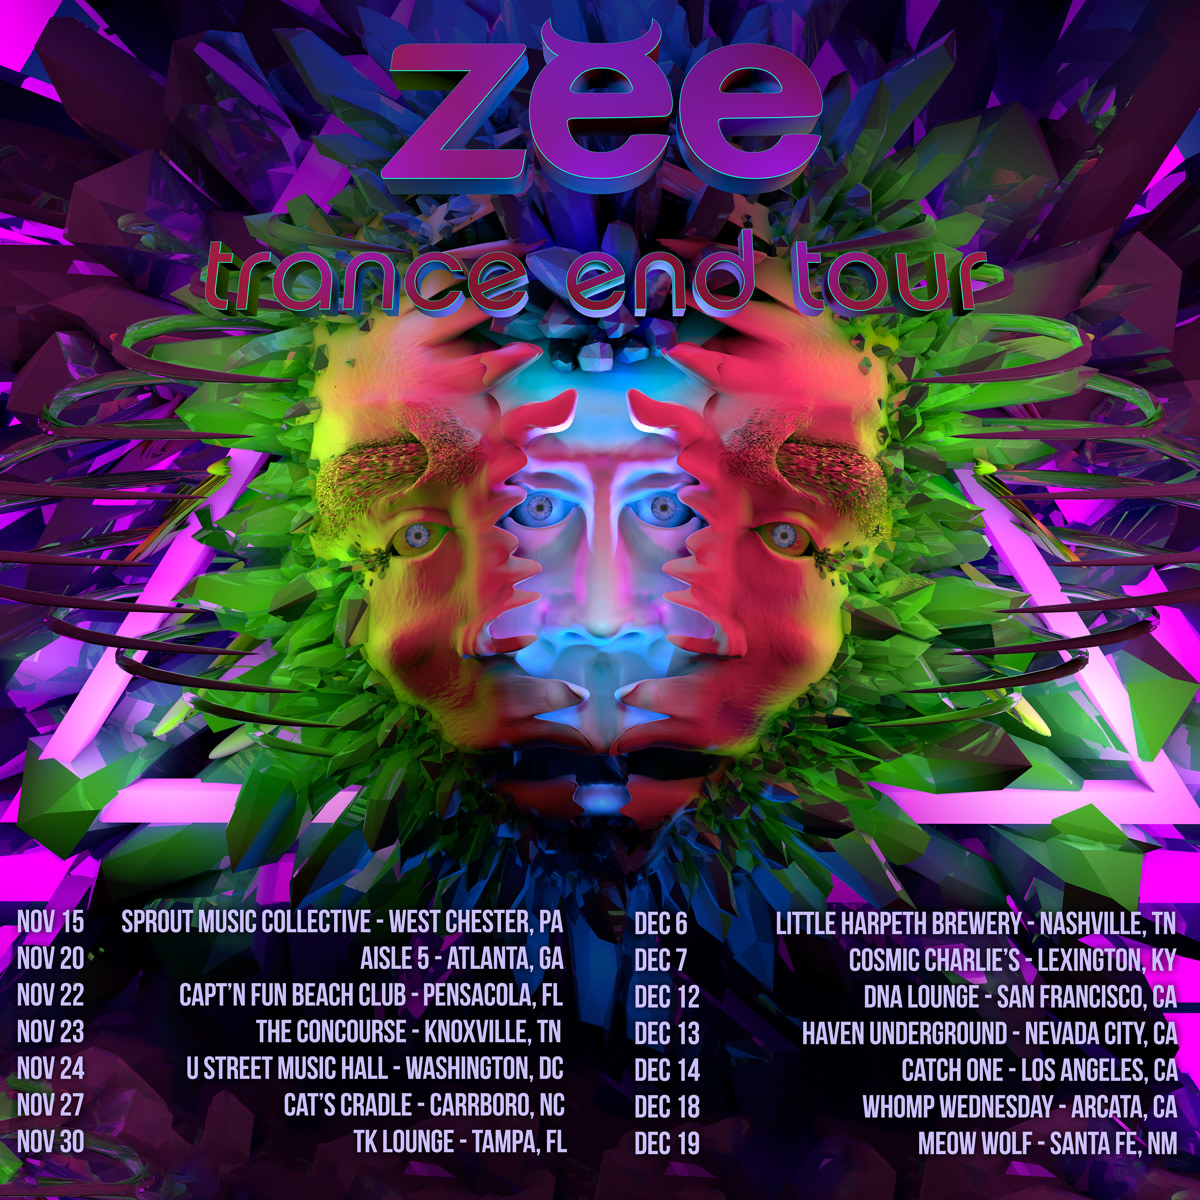 Zee-Trance-End-Tour-square